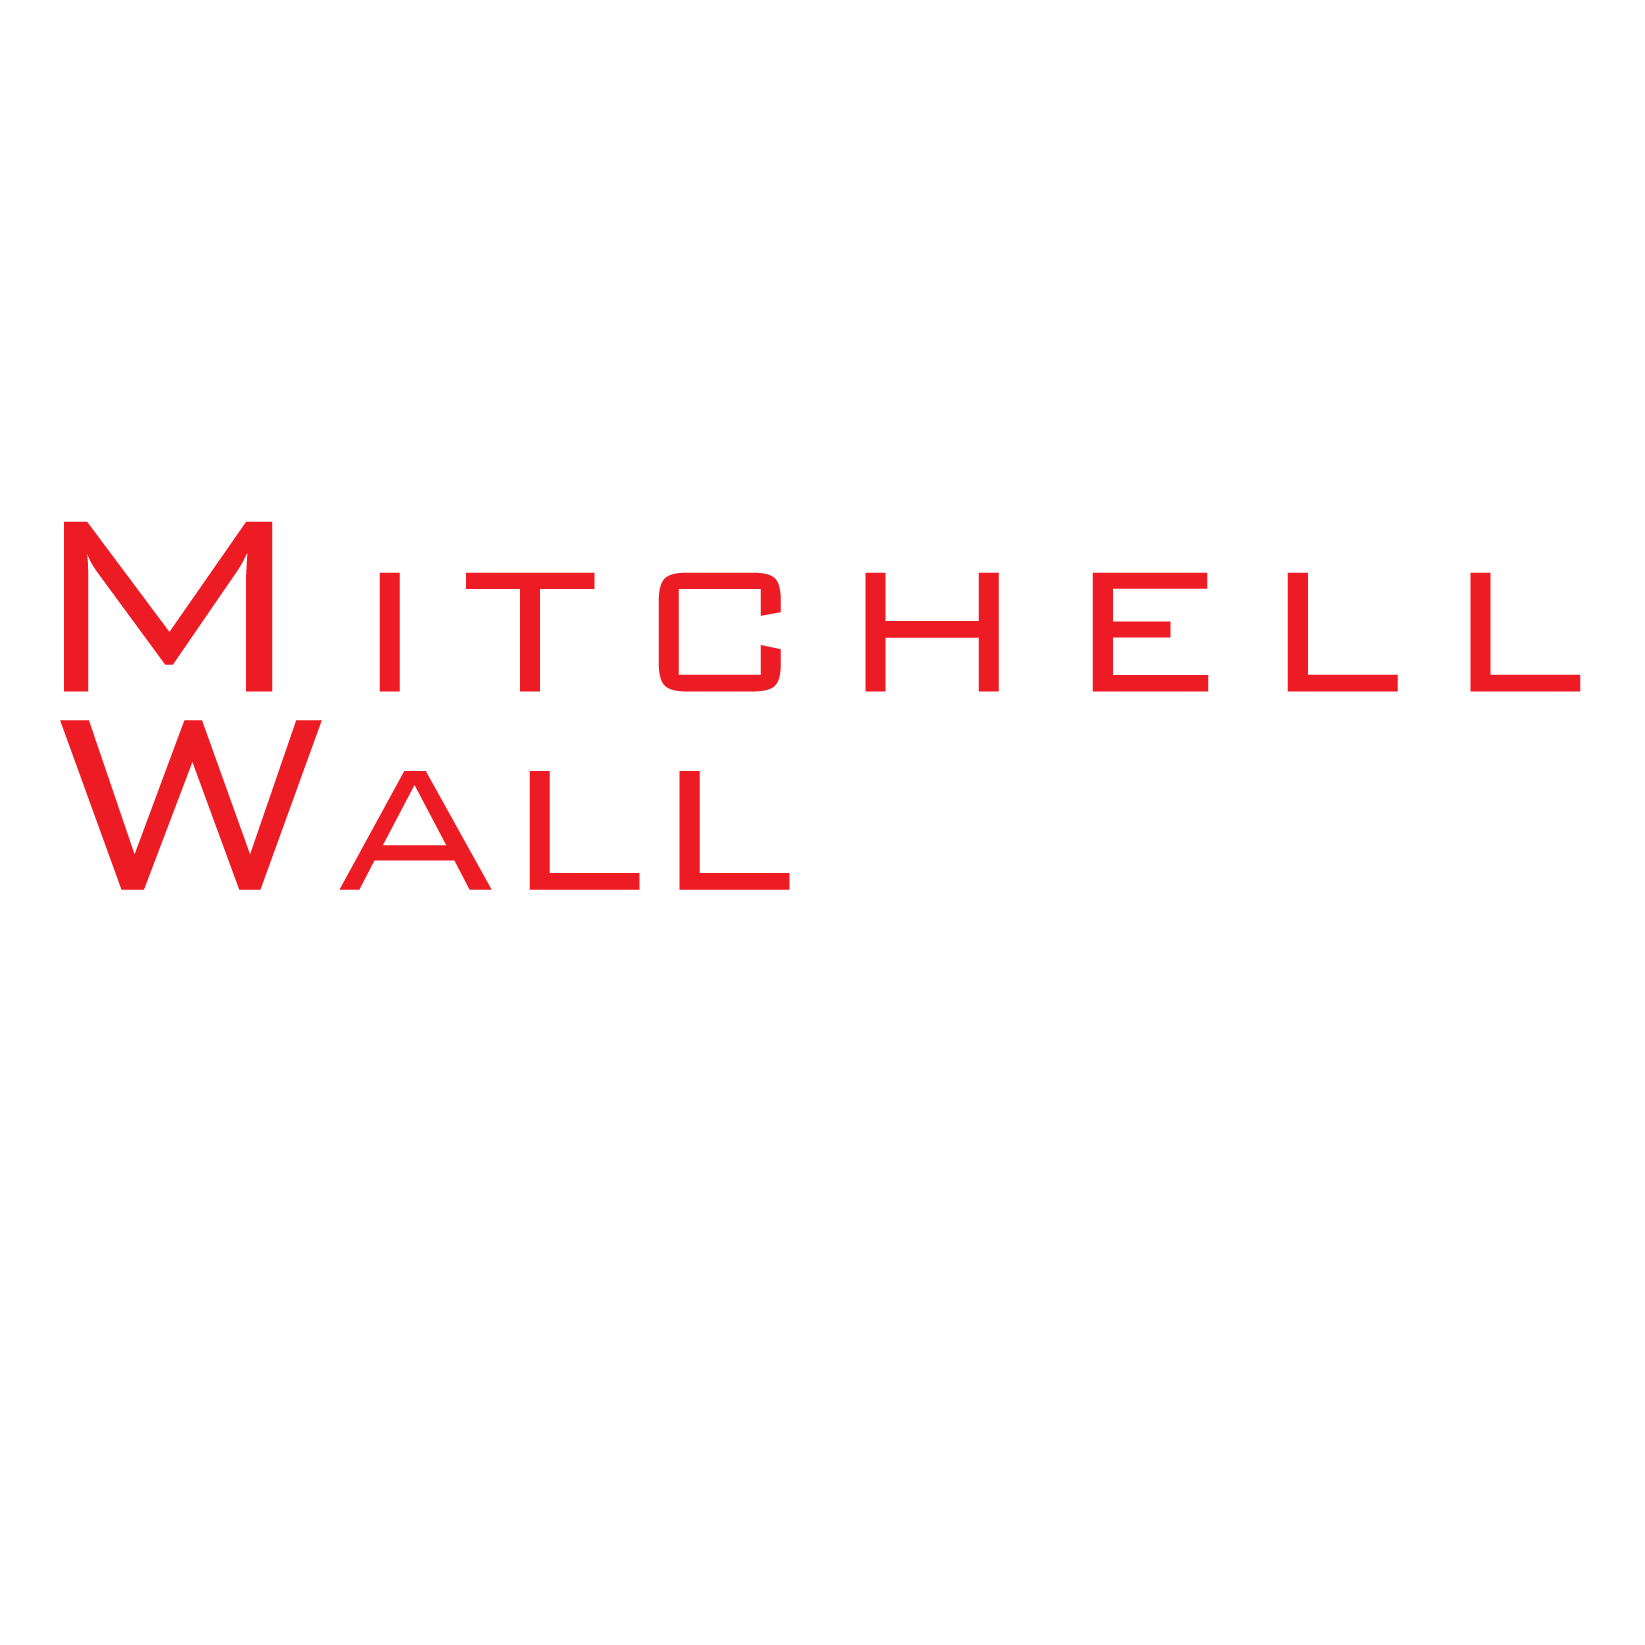 Mitchell Wall Architecture and Design